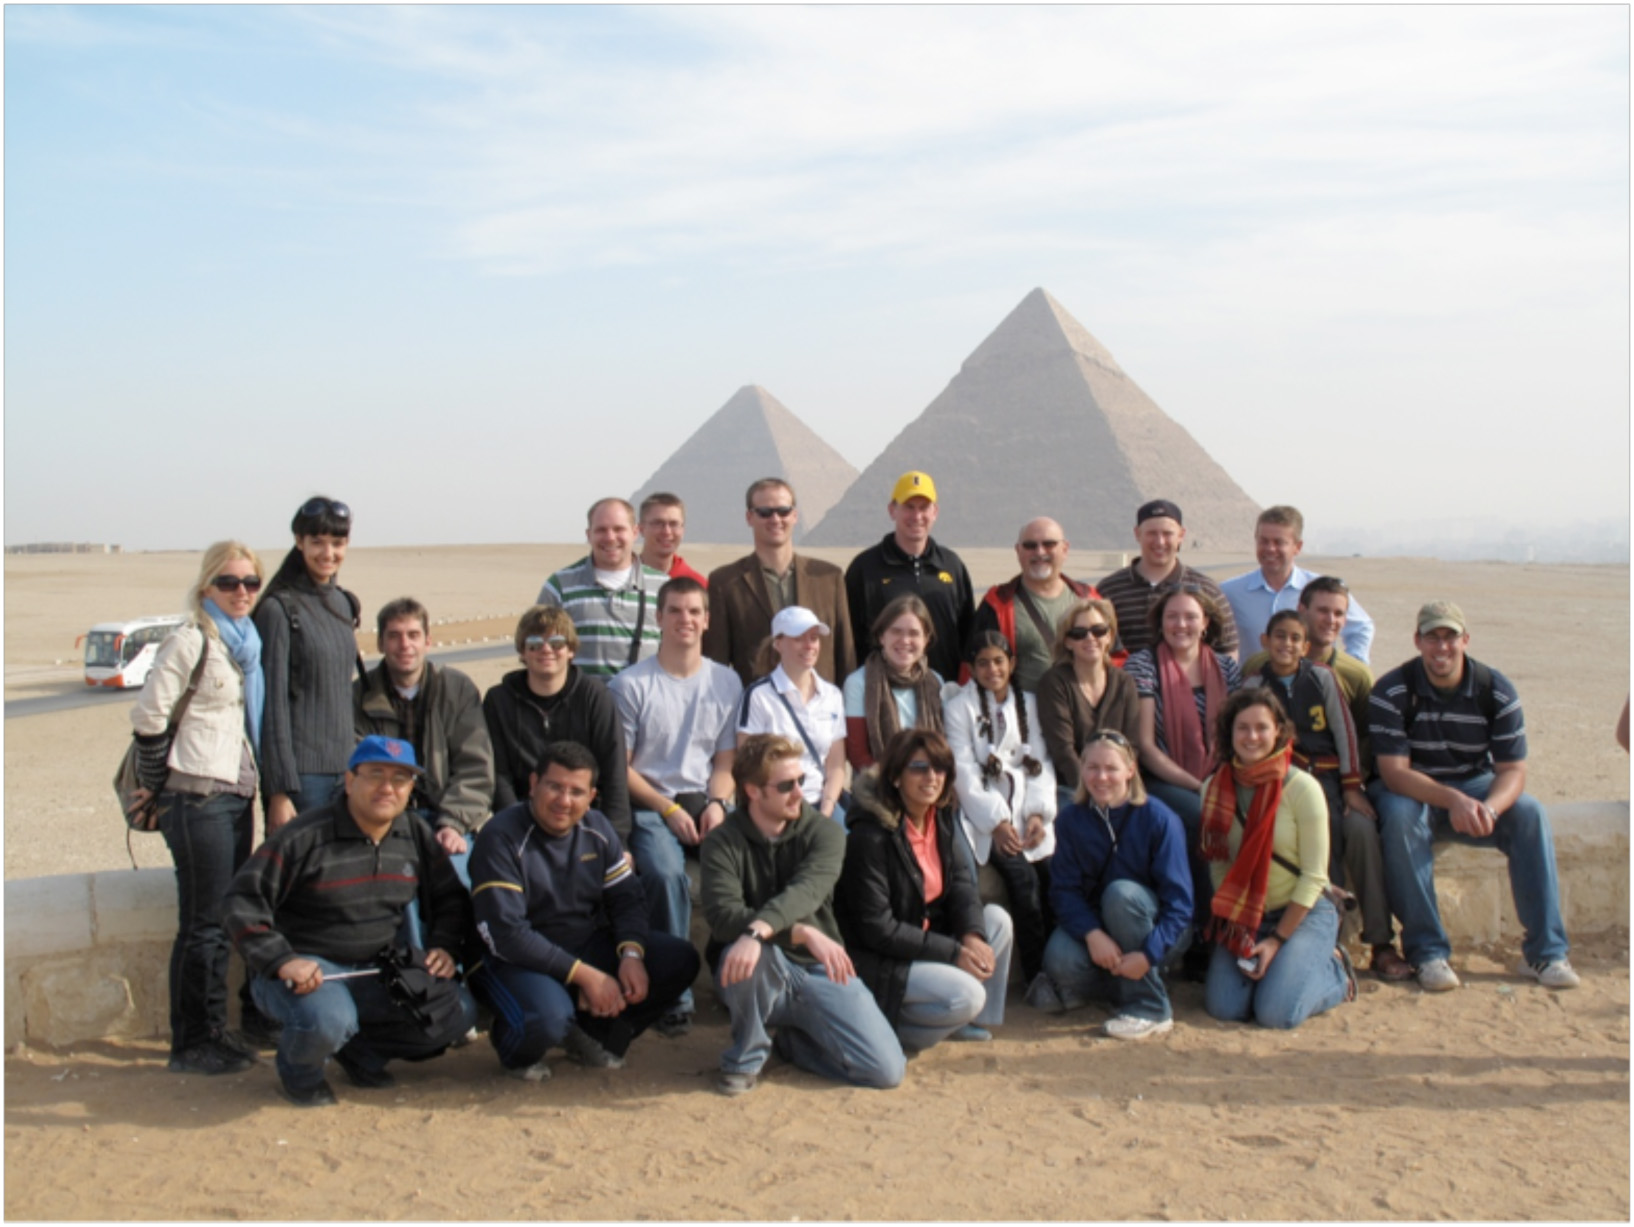 Group photo from the 2009 international perspective trip to Egypt.